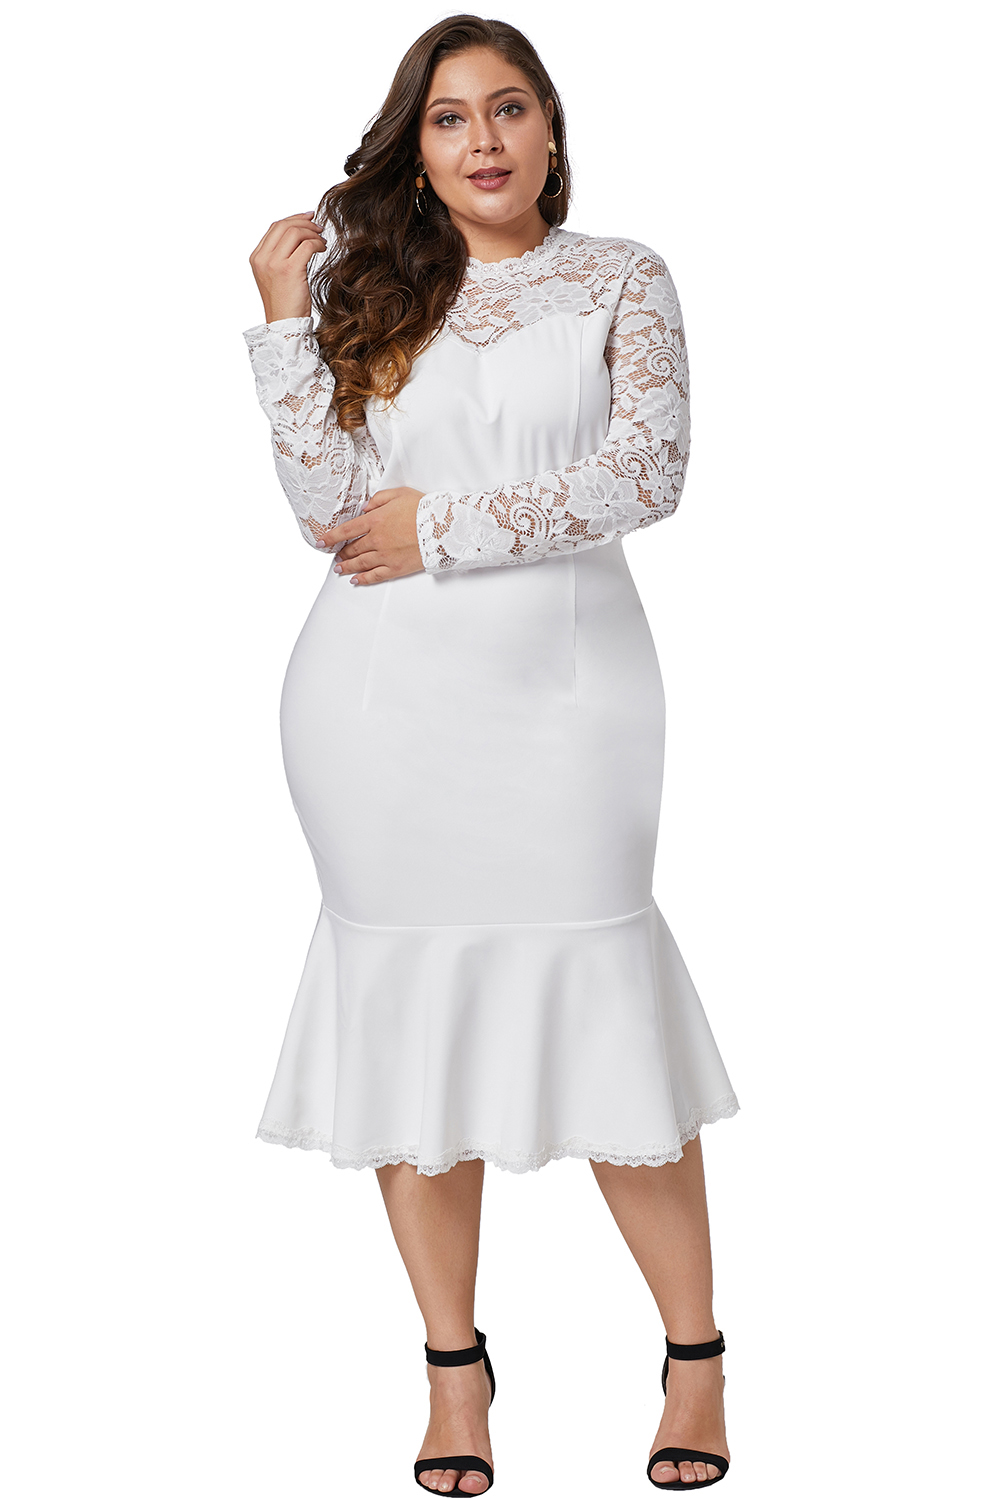 5a077971d730 Plus Size Peplum White Dress – All About The Dress A Bridal & Formal ...